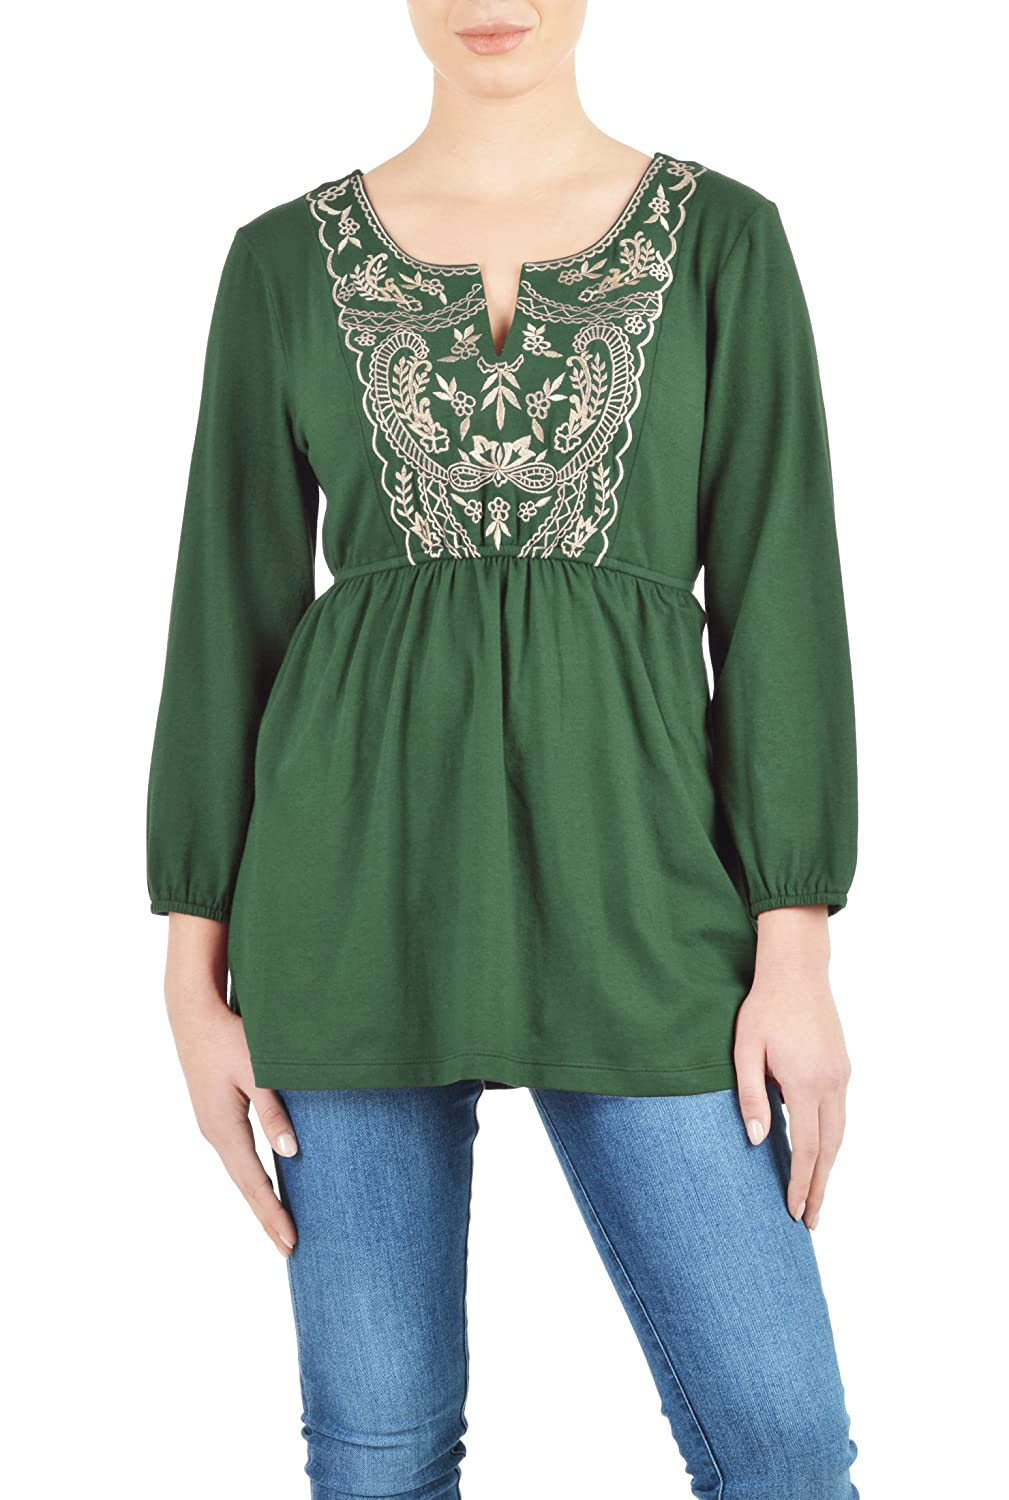 eShakti Women's Custom Embellished bib cotton knit tunic Bottle green/gold